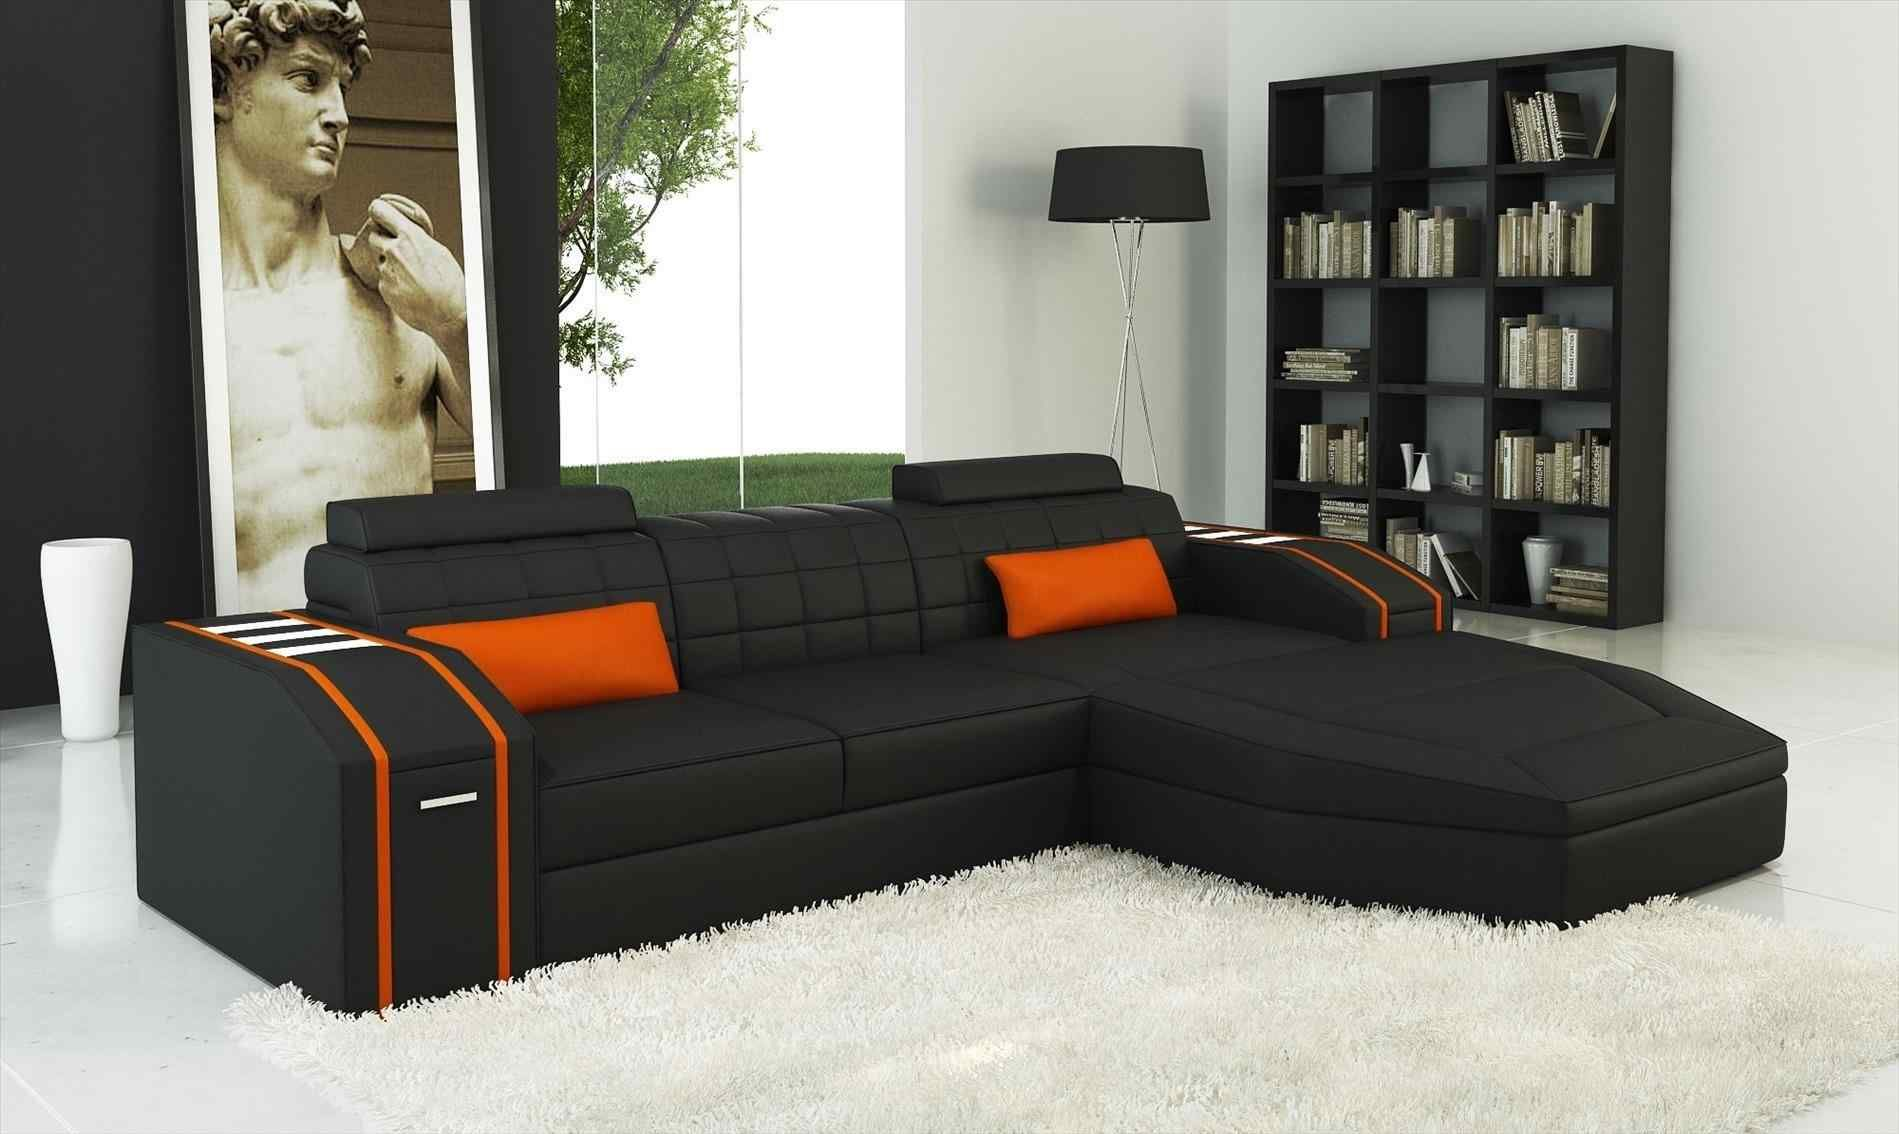 Cheap Discount Sectional Sofas For Sale Contemporary S Tourdecarrollcom Sleep With Images Leather Living Room Furniture Leather Corner Sofa Modern Sofa Sectional